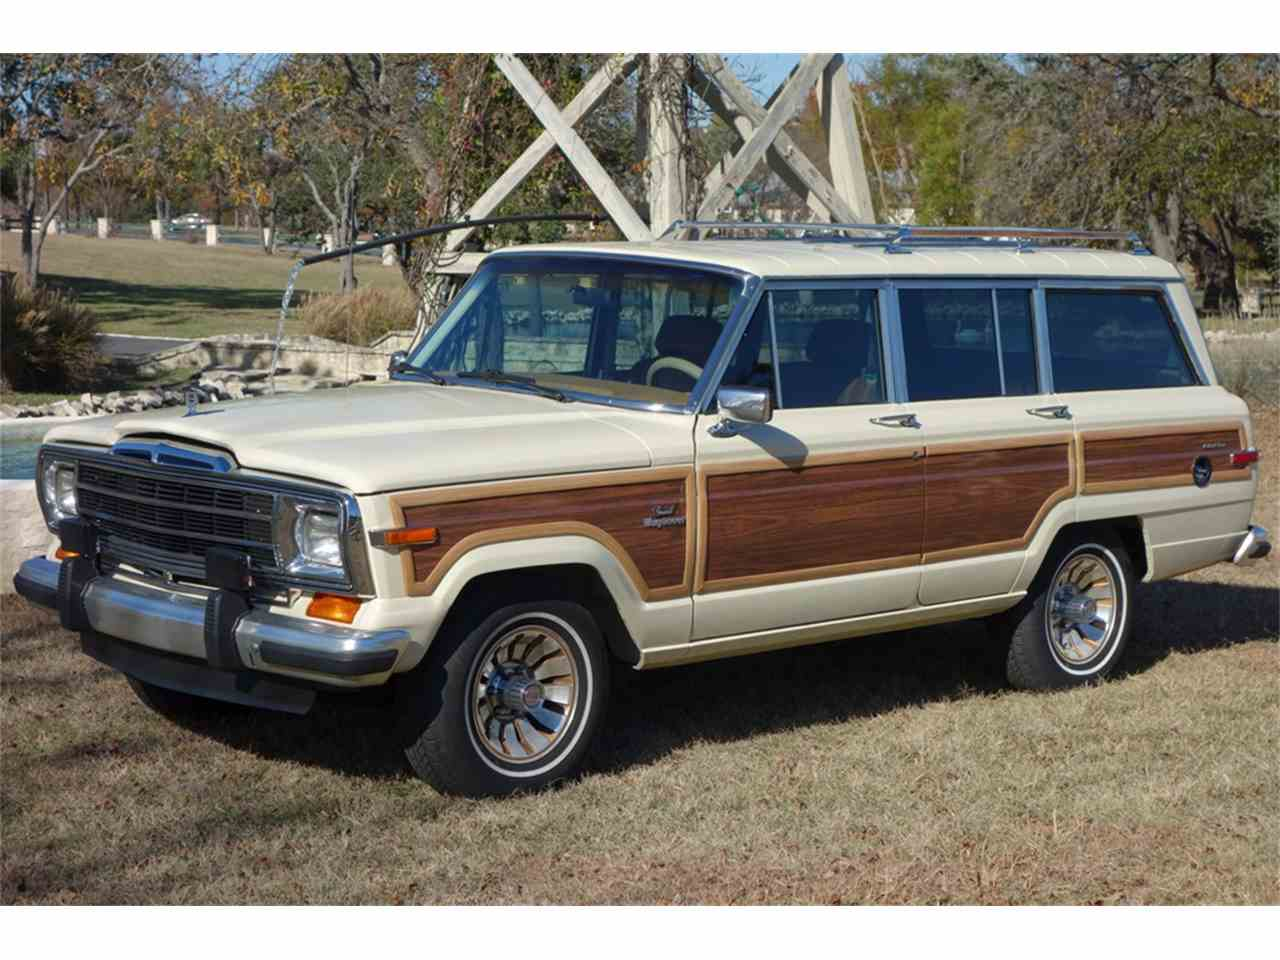 Jeep Wagoneer For Sale >> 1987 Jeep Grand Wagoneer for Sale | ClassicCars.com | CC